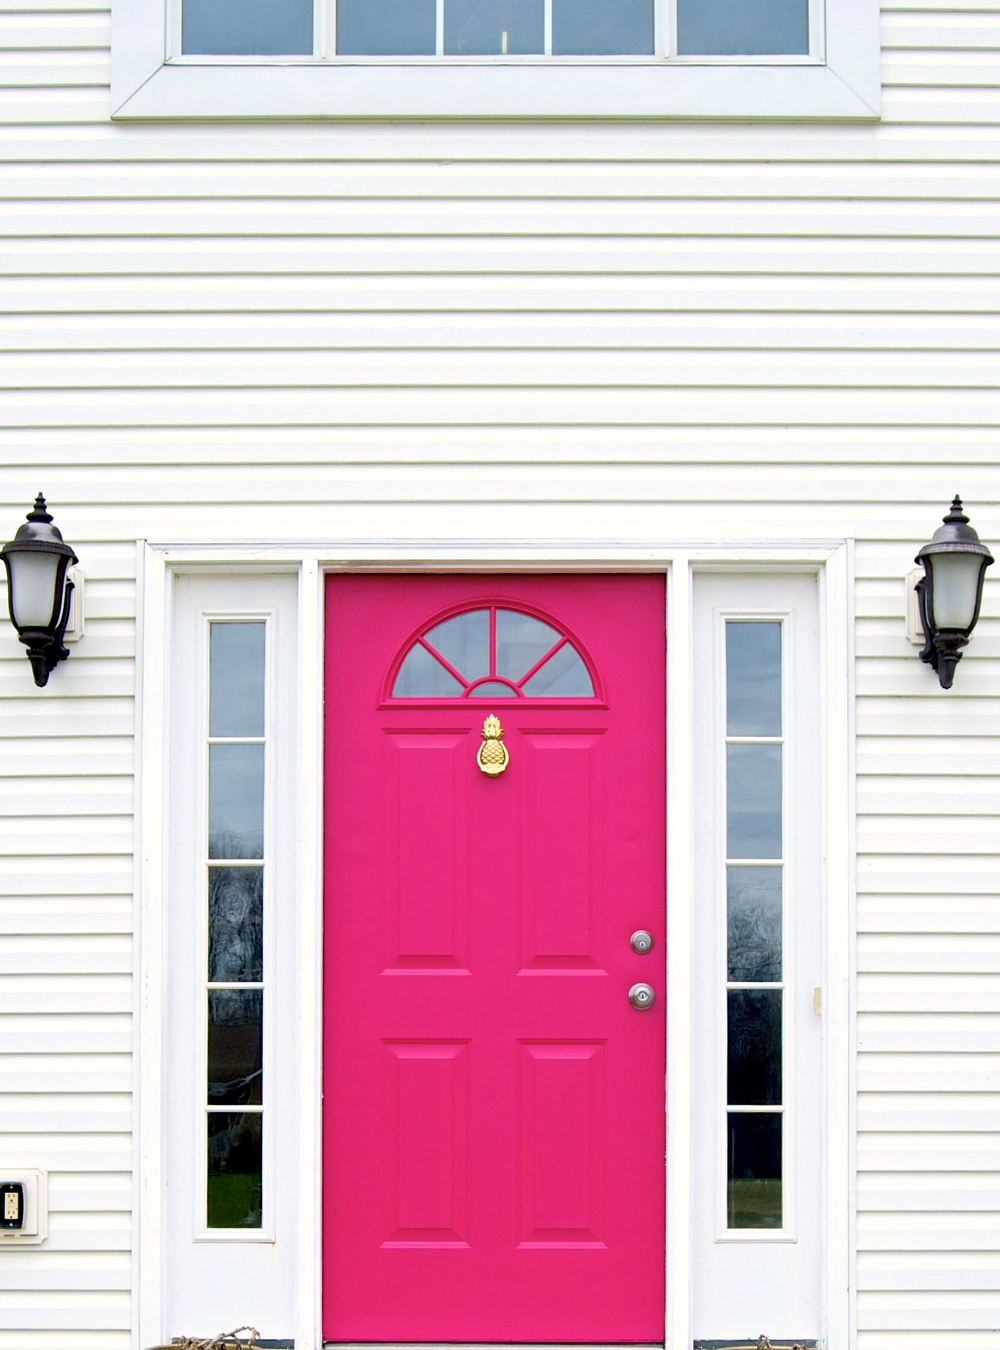 Hot Pink Door With Brass Pineapple Doorknocker. This door was painted with Behr Exterior Paint in Pagoda. See more details at ericahammer.com/blog